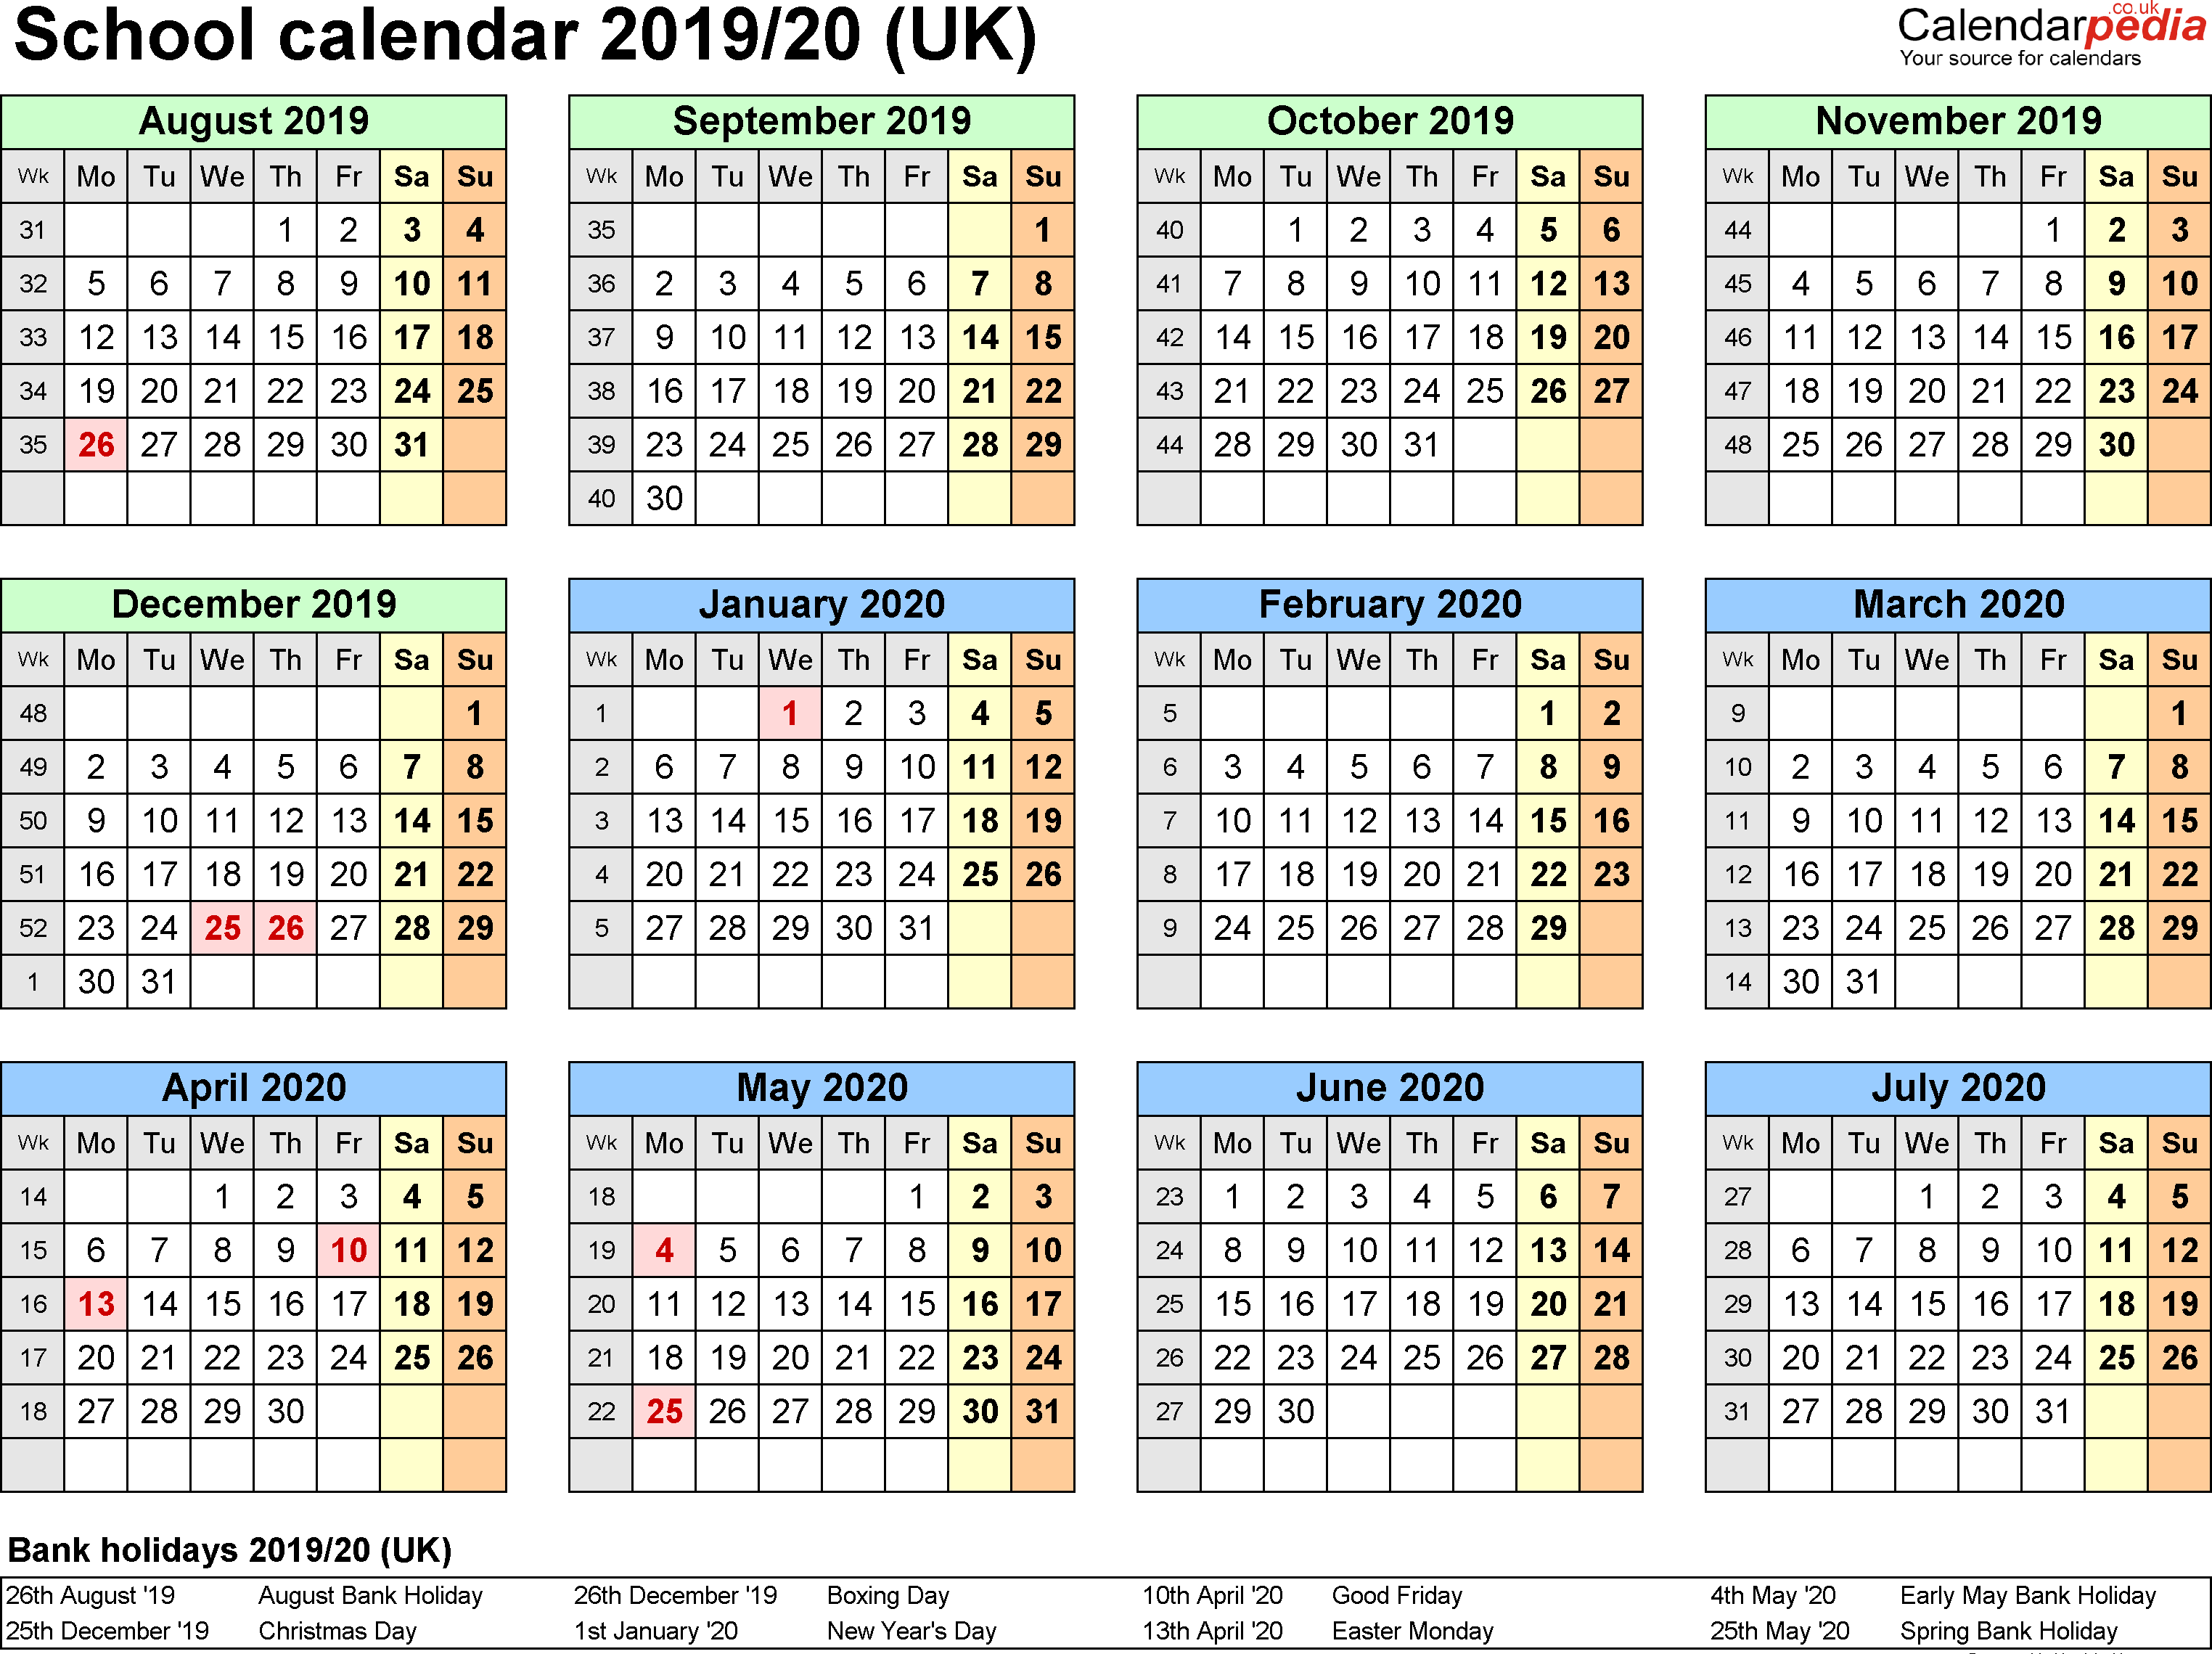 Uk School Calendar 2019 School Holidays 2019 Calendar in UK | UK FEDERAL HOLIDAYS | 2019